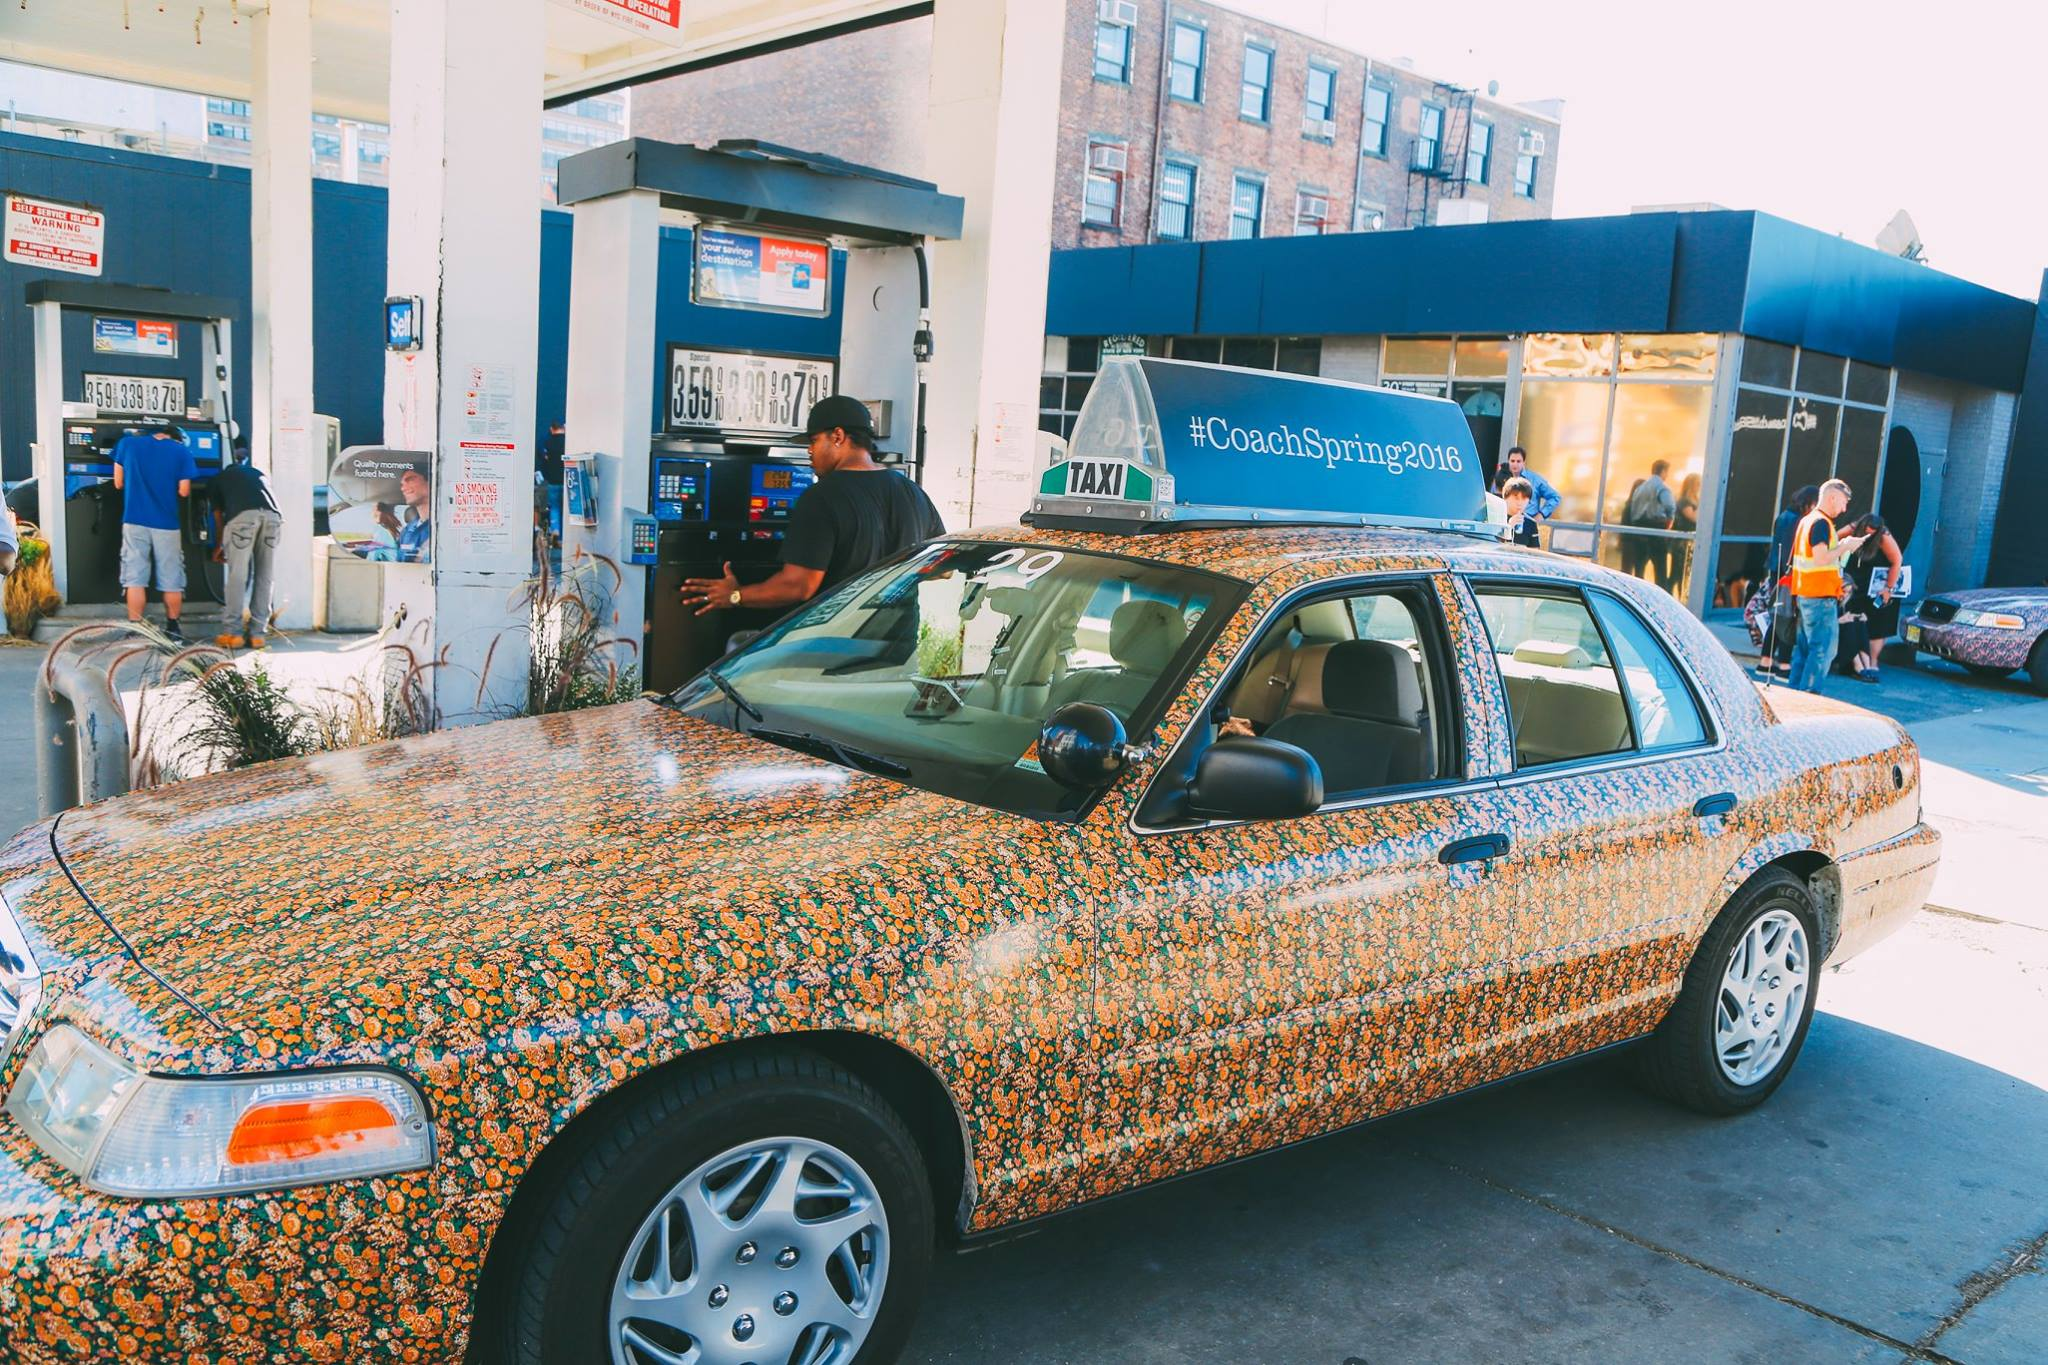 New York Diary: The High Line, Lego House And New York Fashion Week (22)